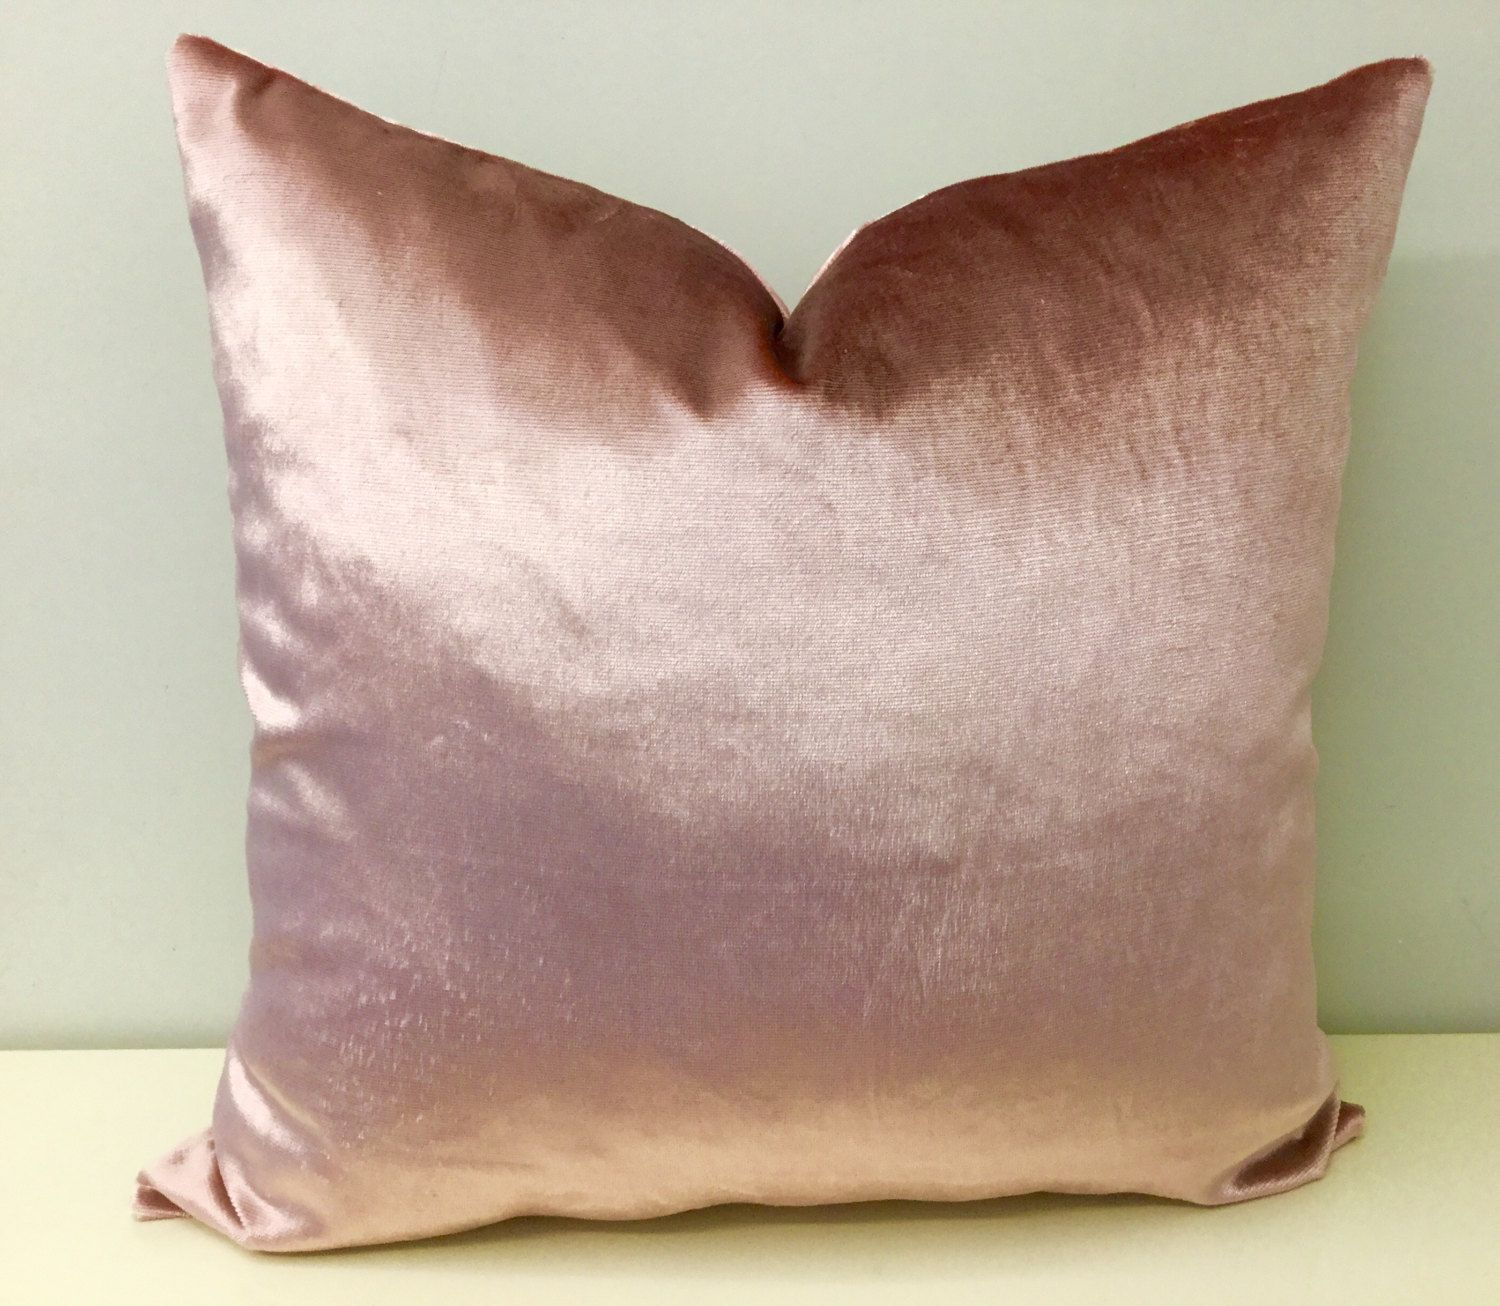 home blush ryanbarrett throw me pillows pink pale healthcareoasis awe interior inspiring pillow